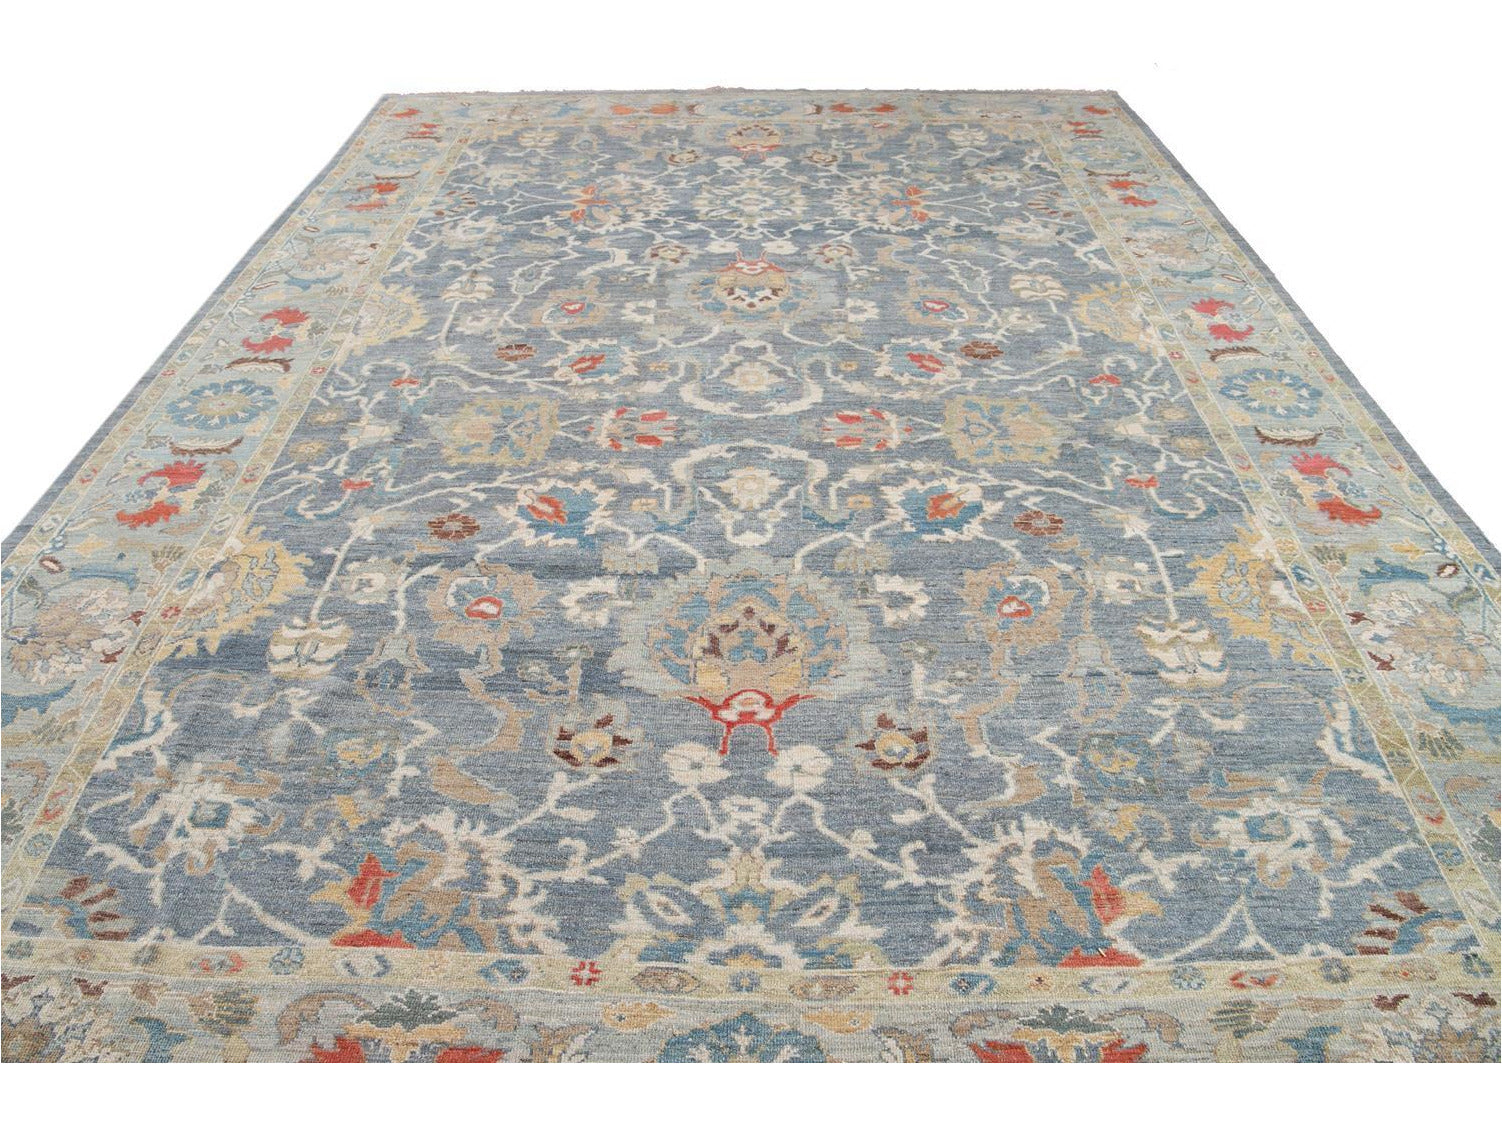 Modern Sultanabad Oversize Wool Rug 12 X 17